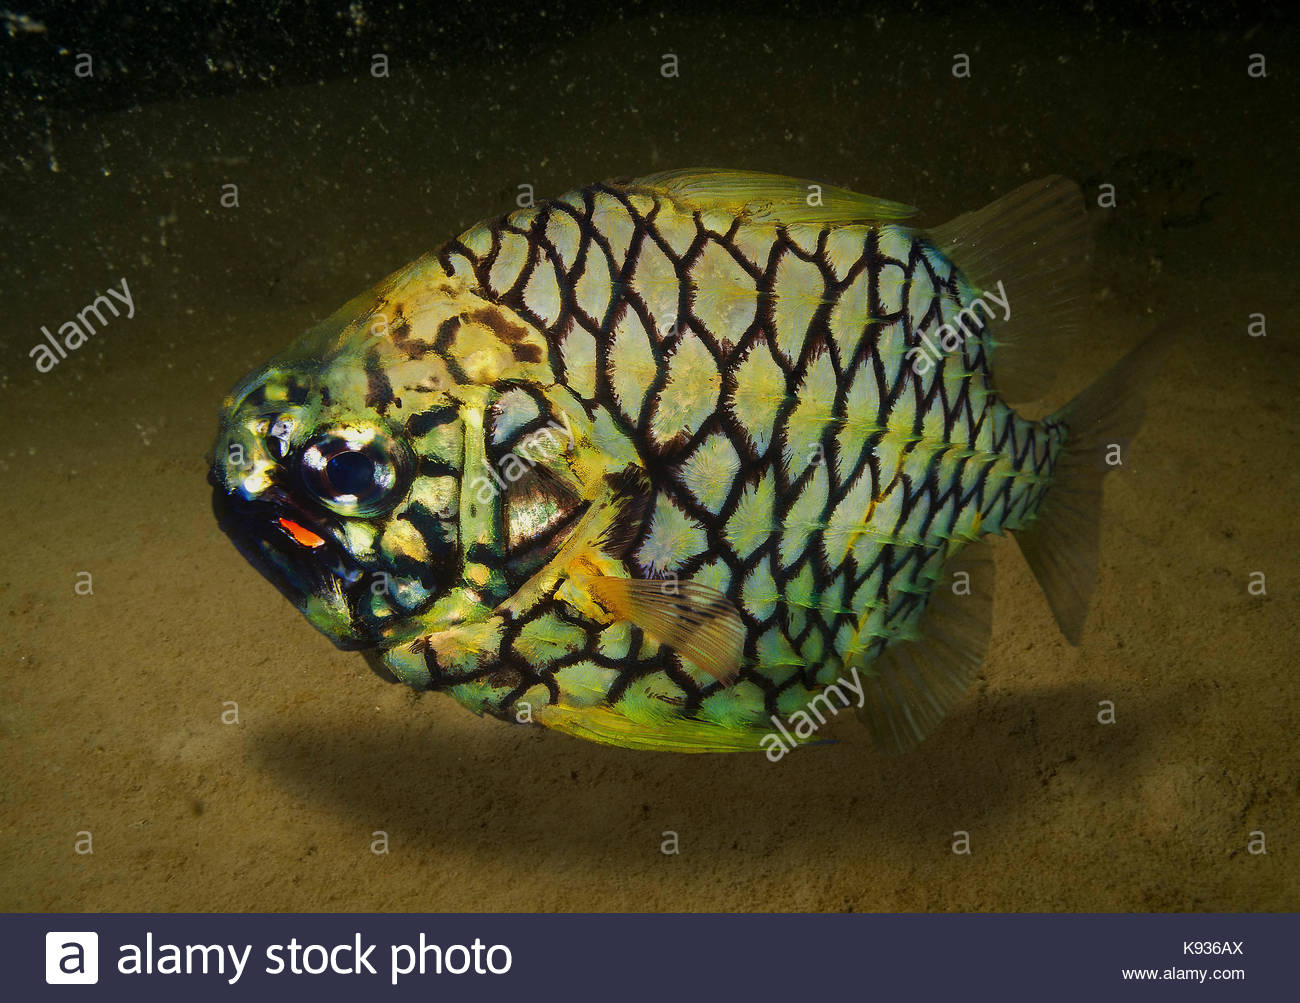 Pineapplefish, Cleidopus gloriamaris. The pineapplefish is a weak swimmer and a nocturnal species found inside caves - Stock Image